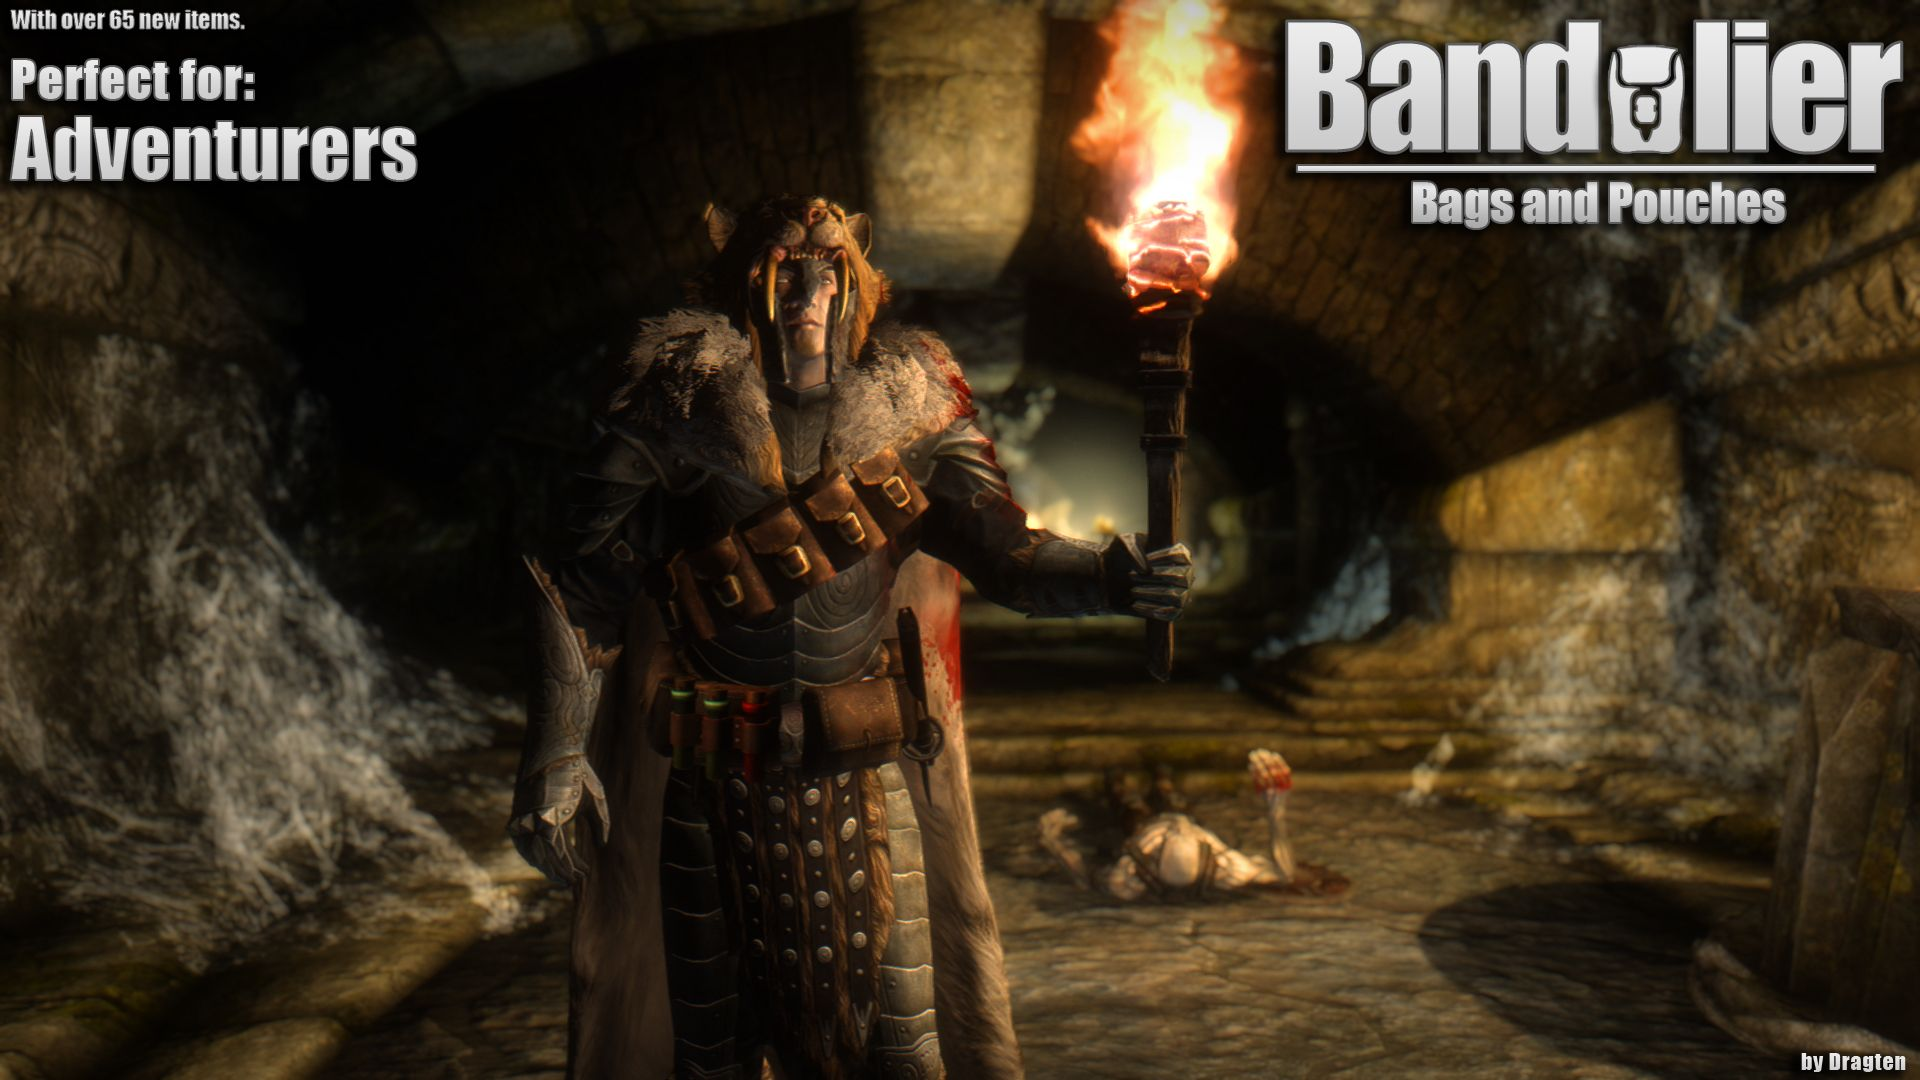 Bandolier - Bags and Pouches by Dragten | Skyrim Nexus Mods